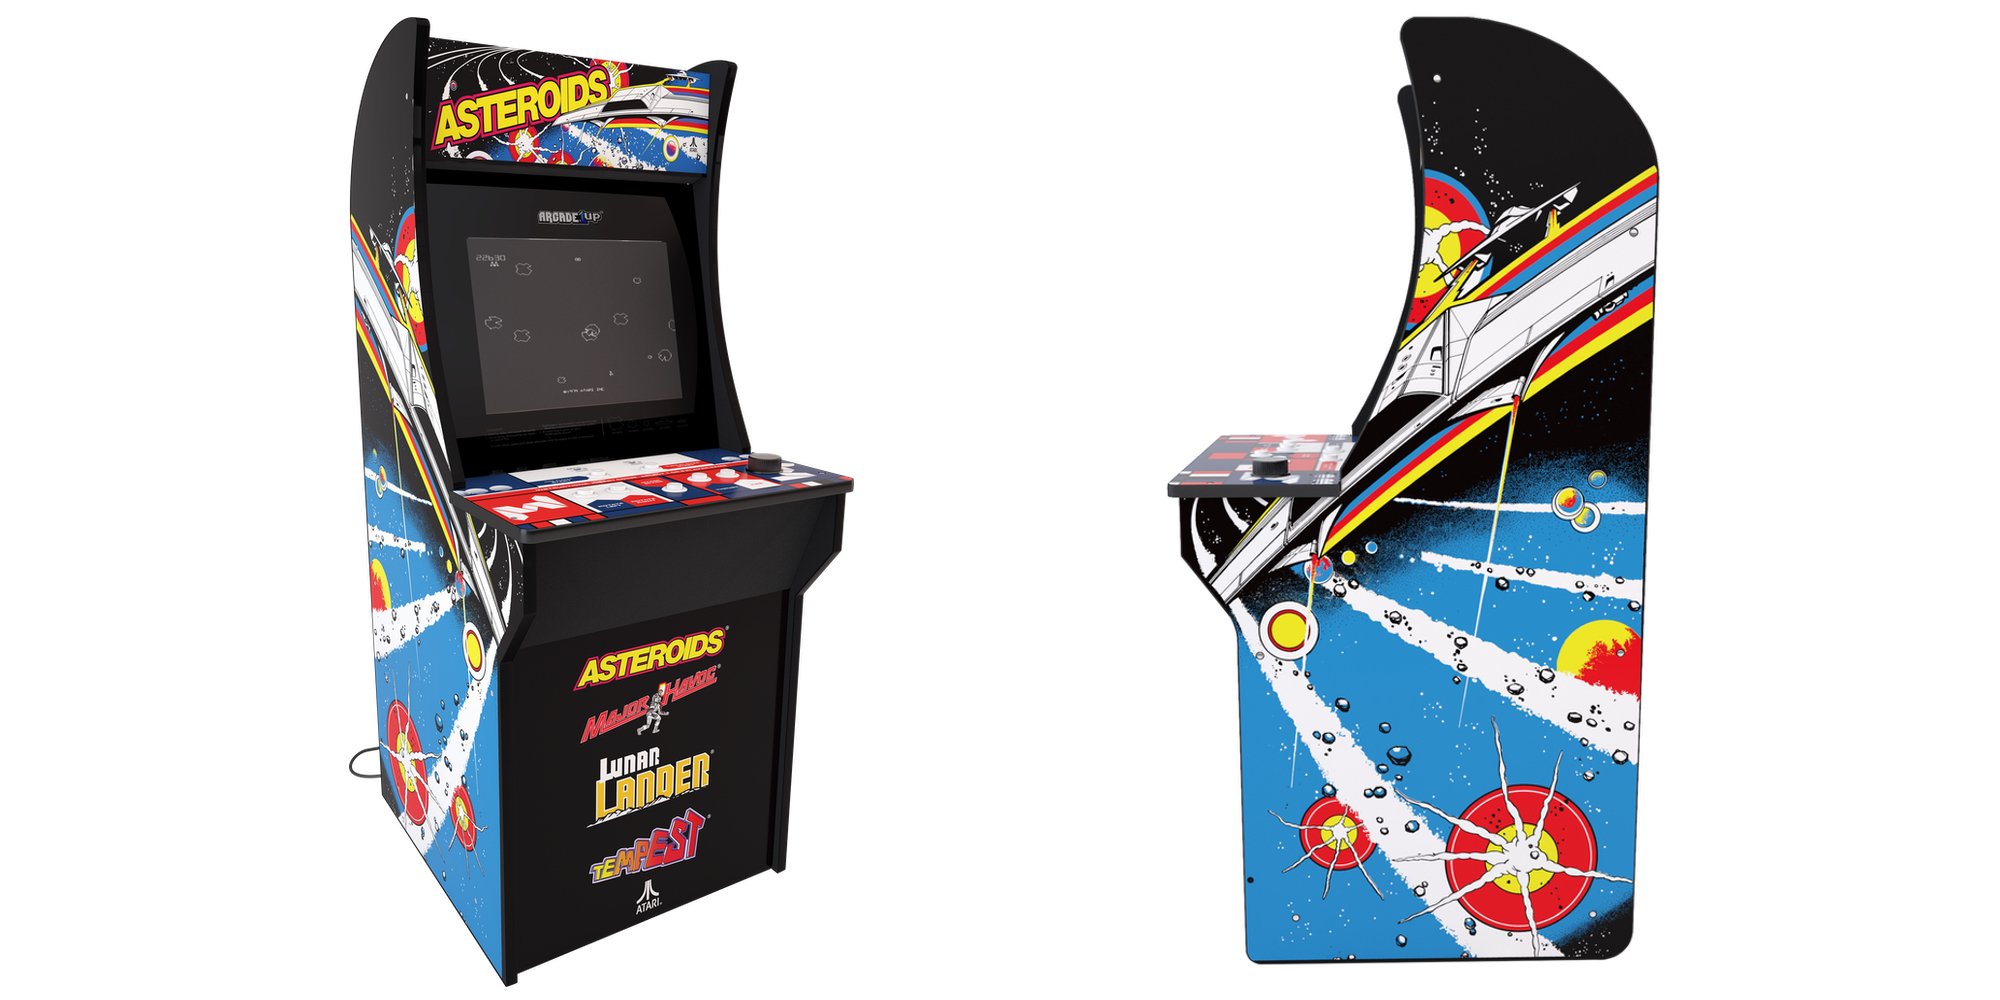 Get your retro game on with the Arcade1Up Asteroids Machine at a new low of $163 (Reg. $299)